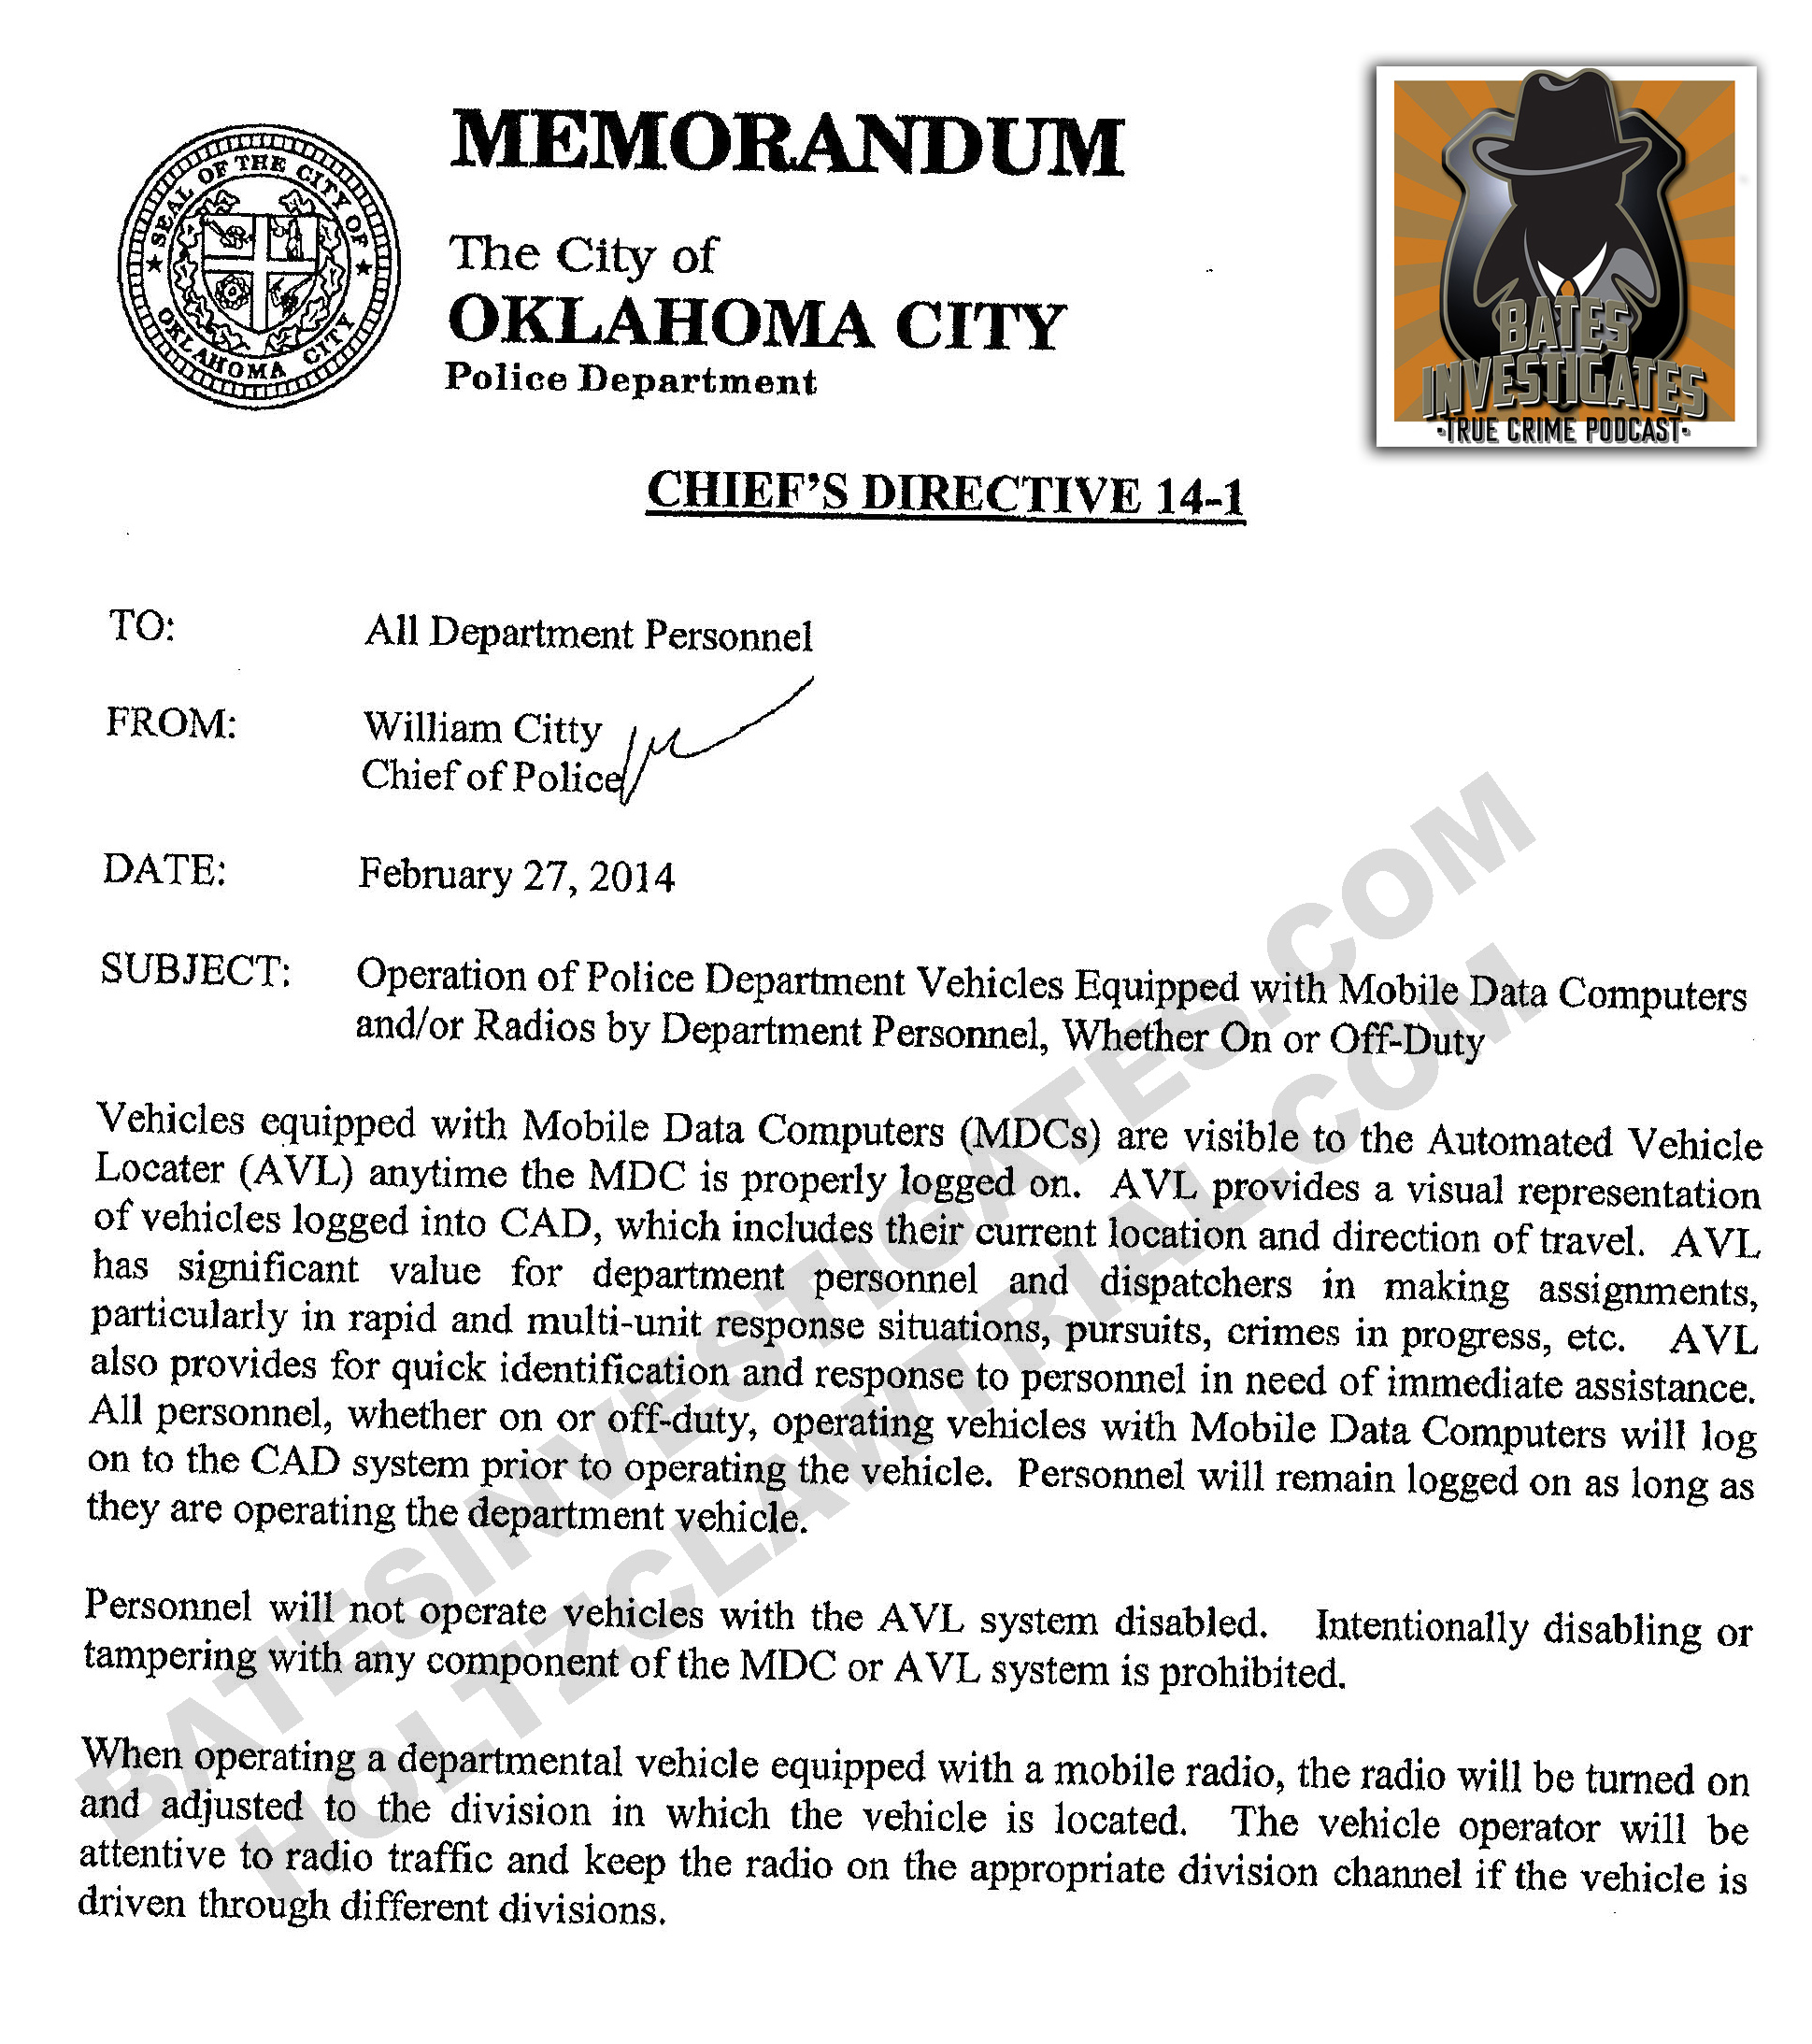 OCPD Chief's Directive regarding new AVL policy, dated 2/27/2014.